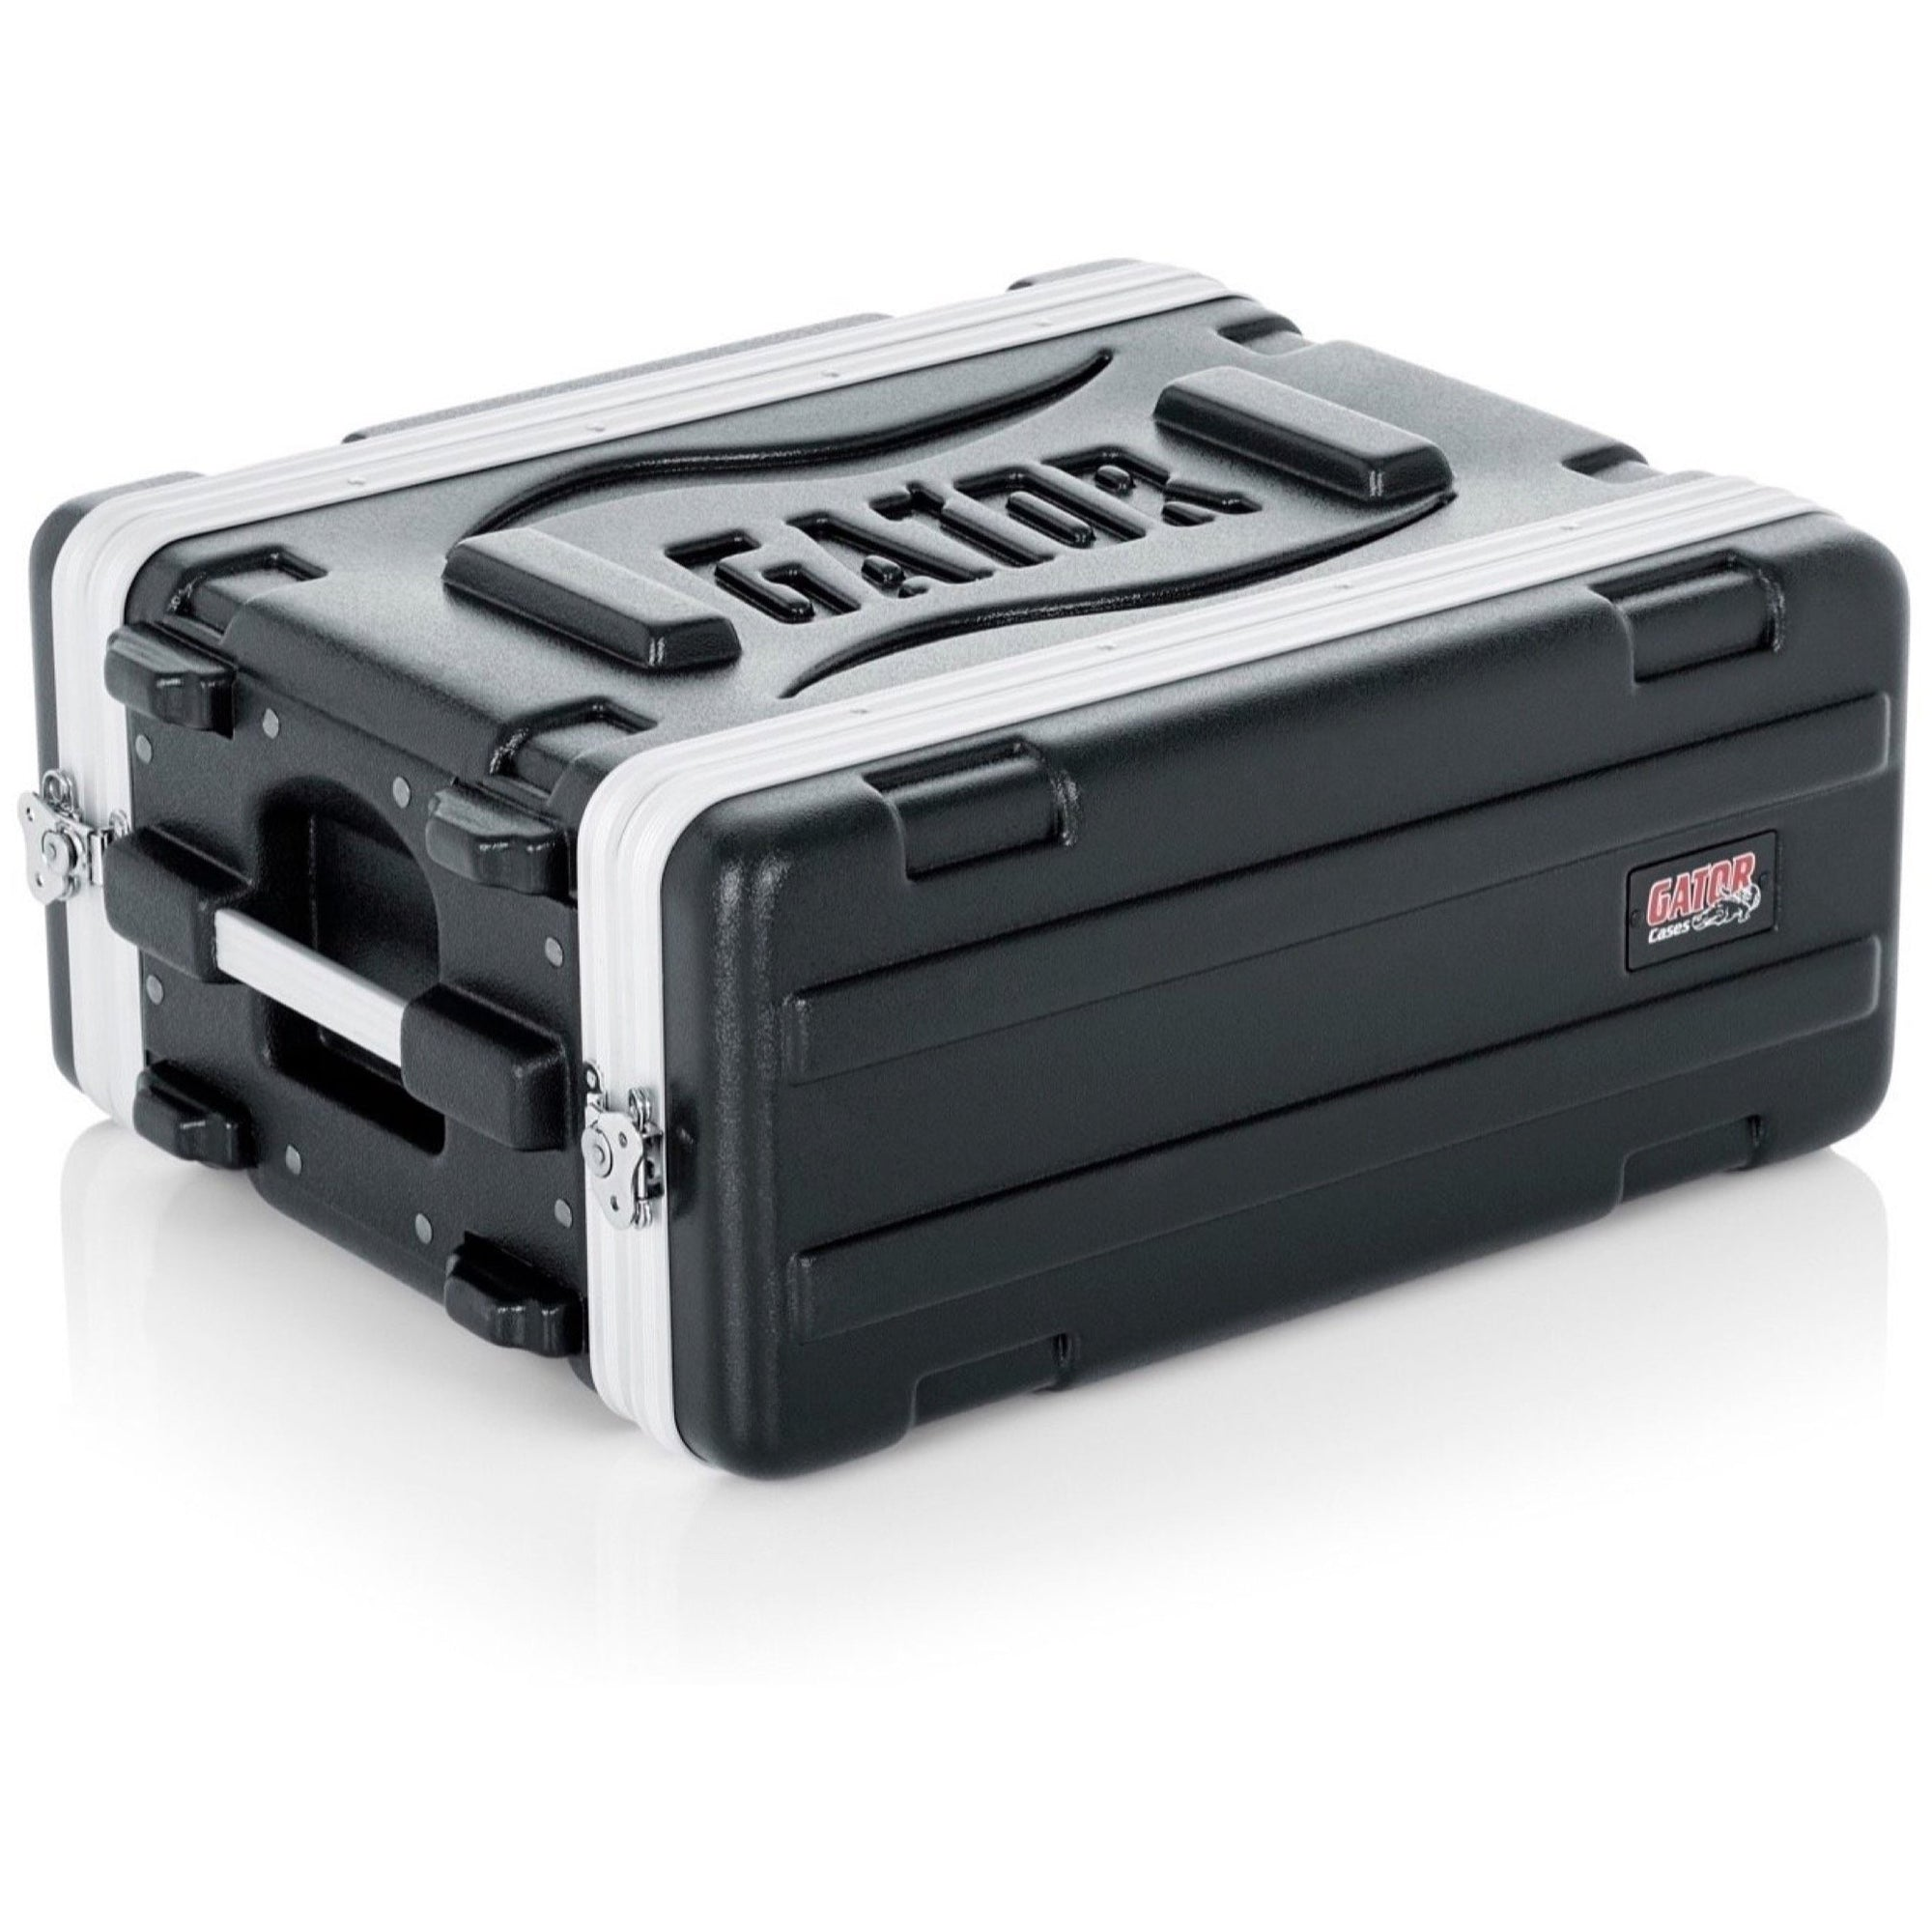 Gator Shallow Audio Rack Case, GR-4S, 4-Space